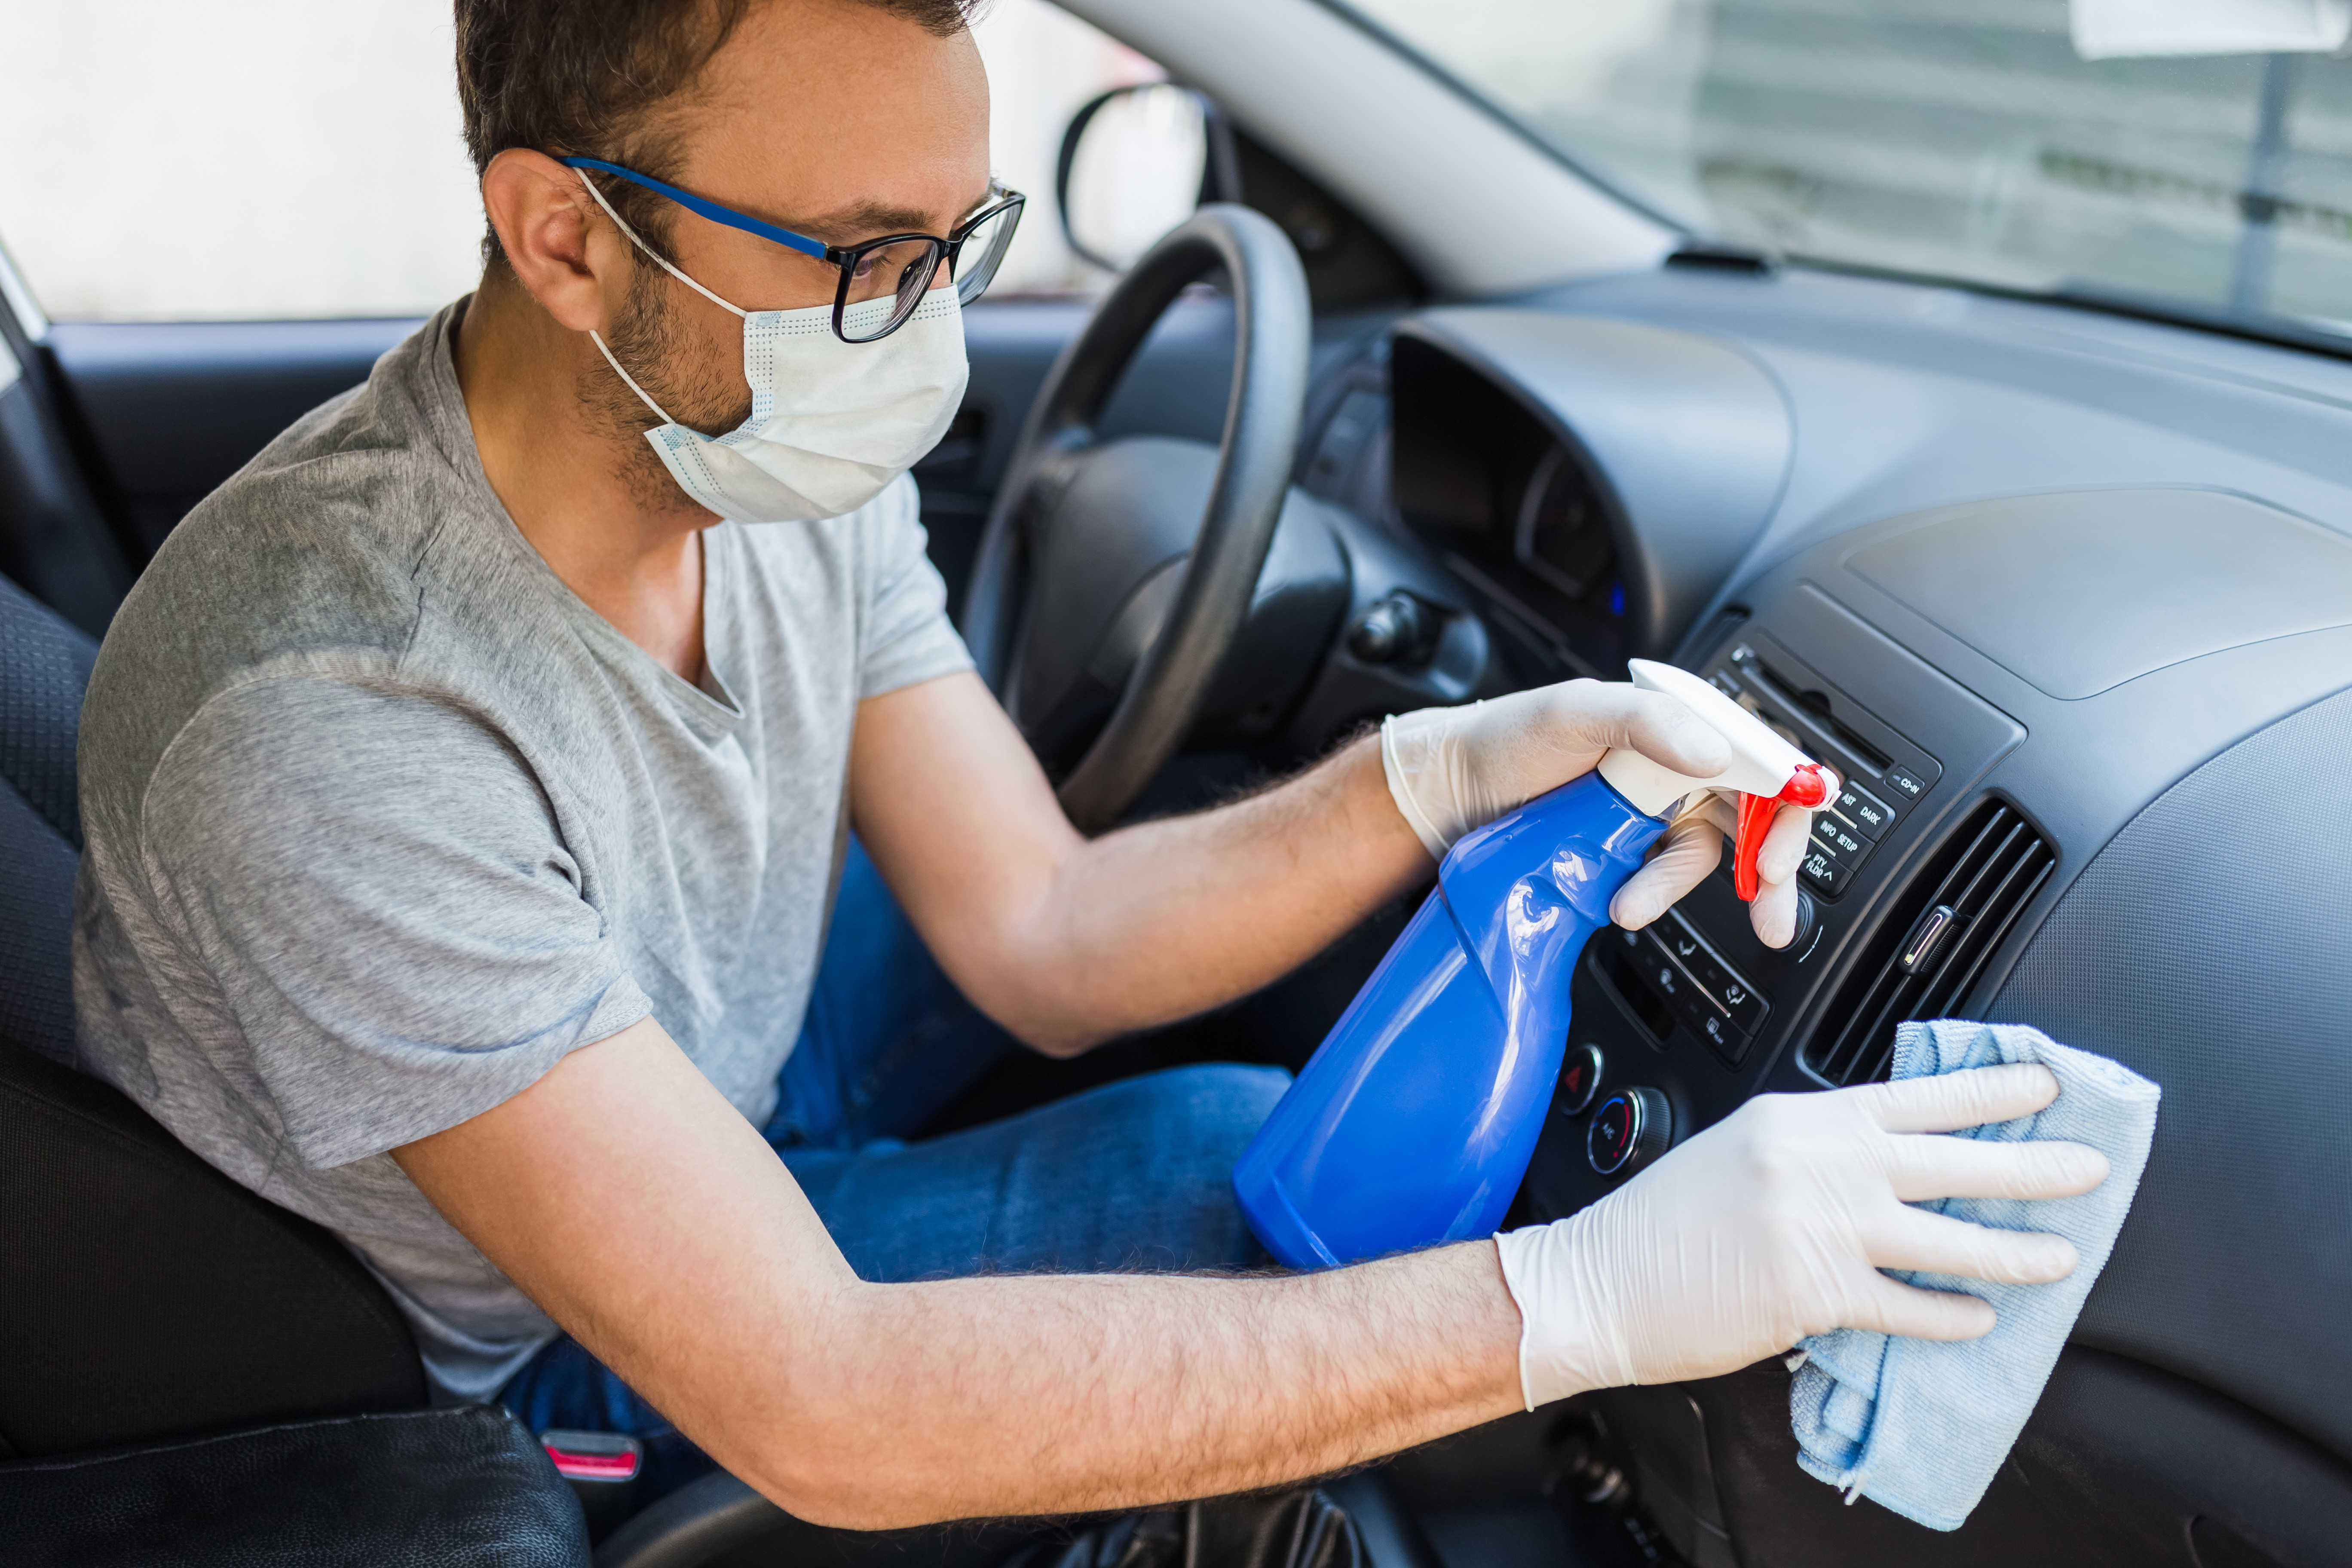 Car Sanitization and Cleaning Best Practices When Cleaning Your Customers' Cars